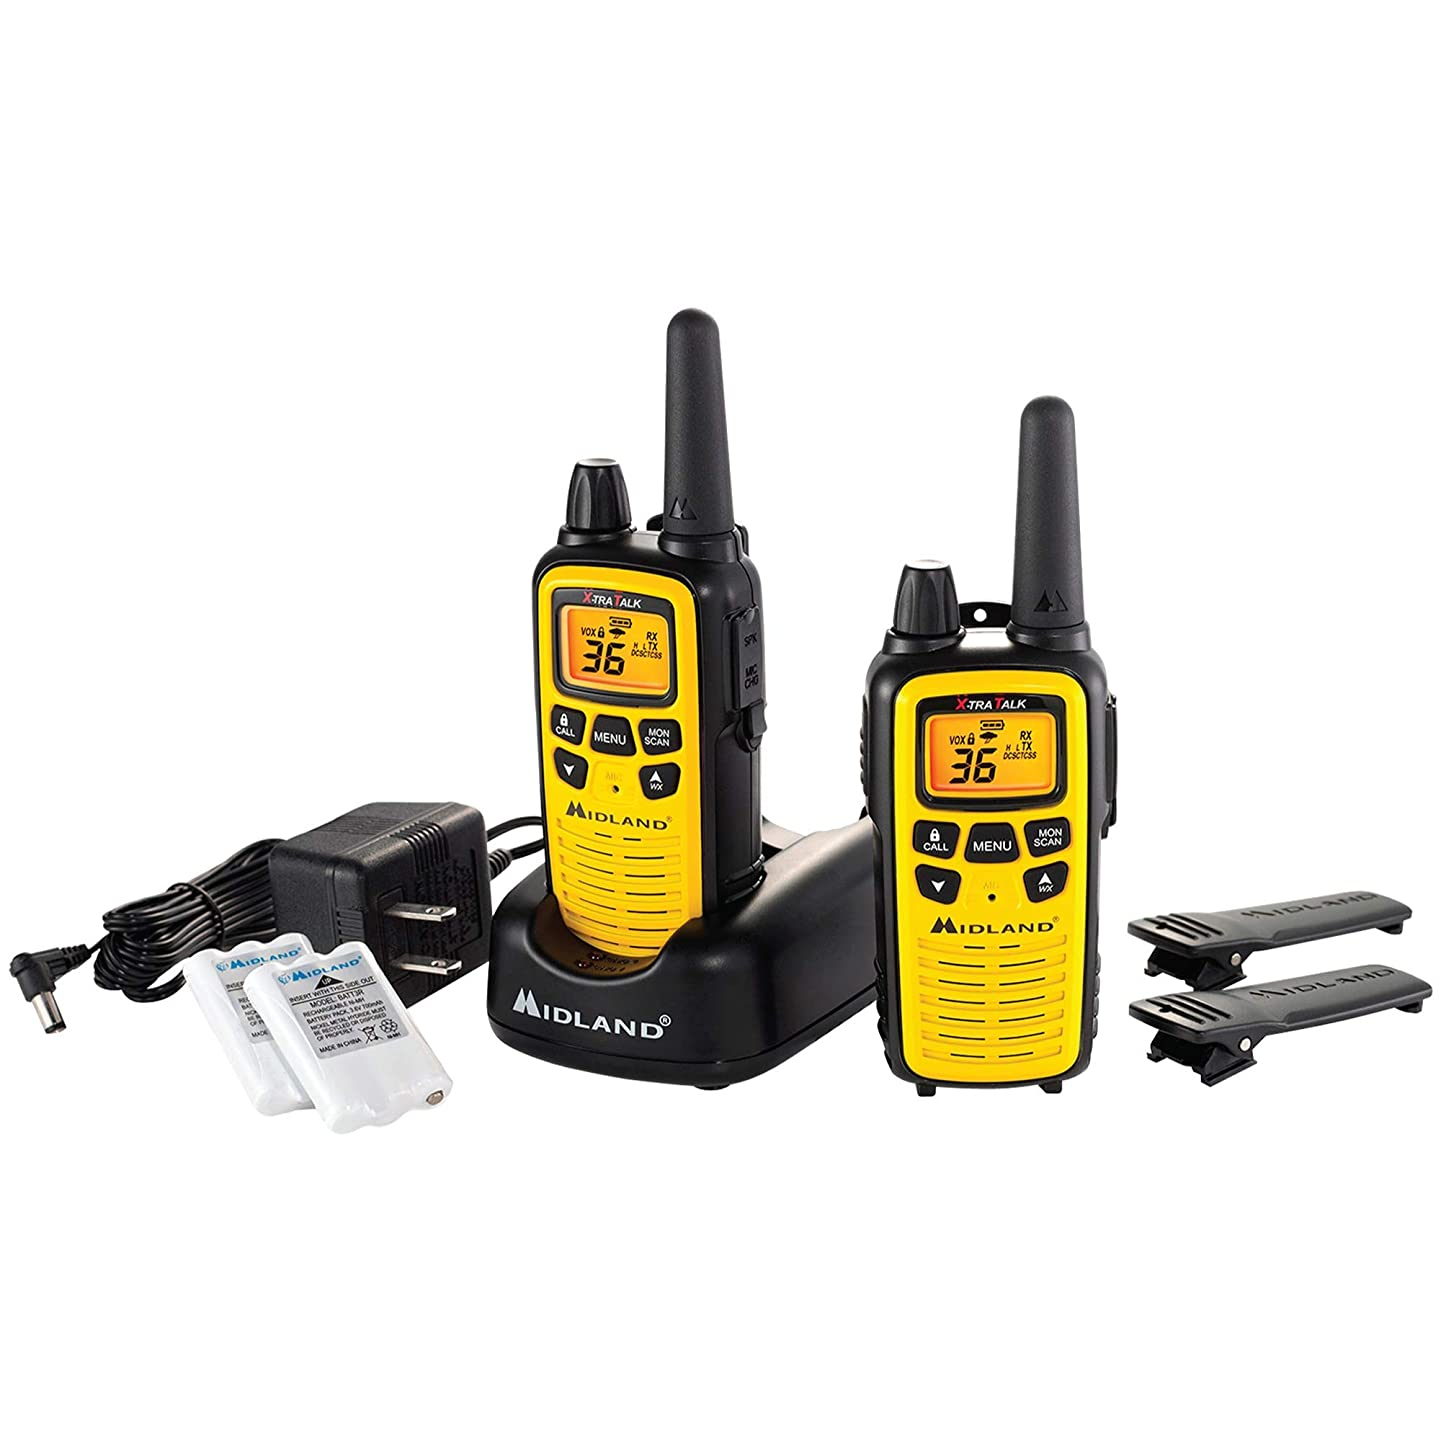 Midland - LXT630VP3, 36 Channel FRS Two-Way Radio - Up to 30 Mile Range Walkie Talkie, 121 Privacy Codes, NOAA Weather Scan + Alert (Pair Pack) (Yellow/Black)